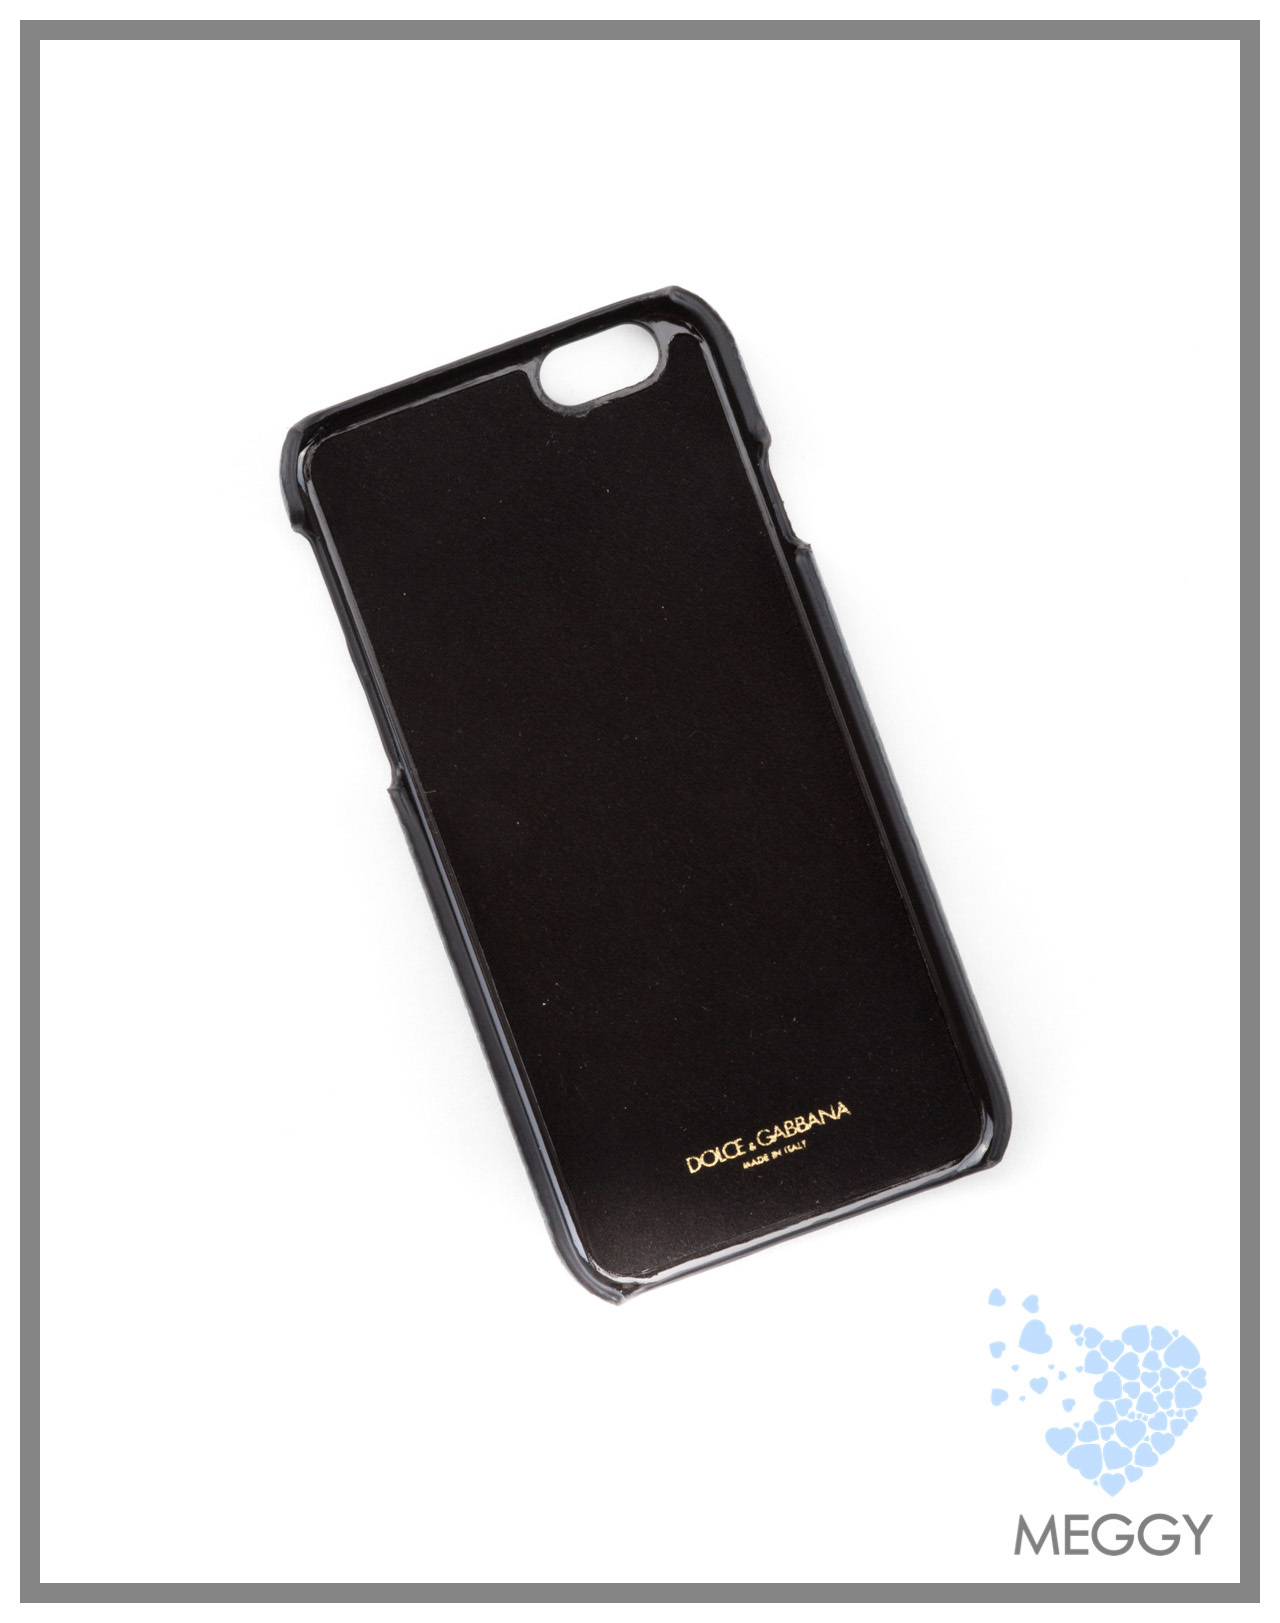 PHONE CASE 6G VITELLO PALMELLATO+RICAMO BP2157 AB370 80651